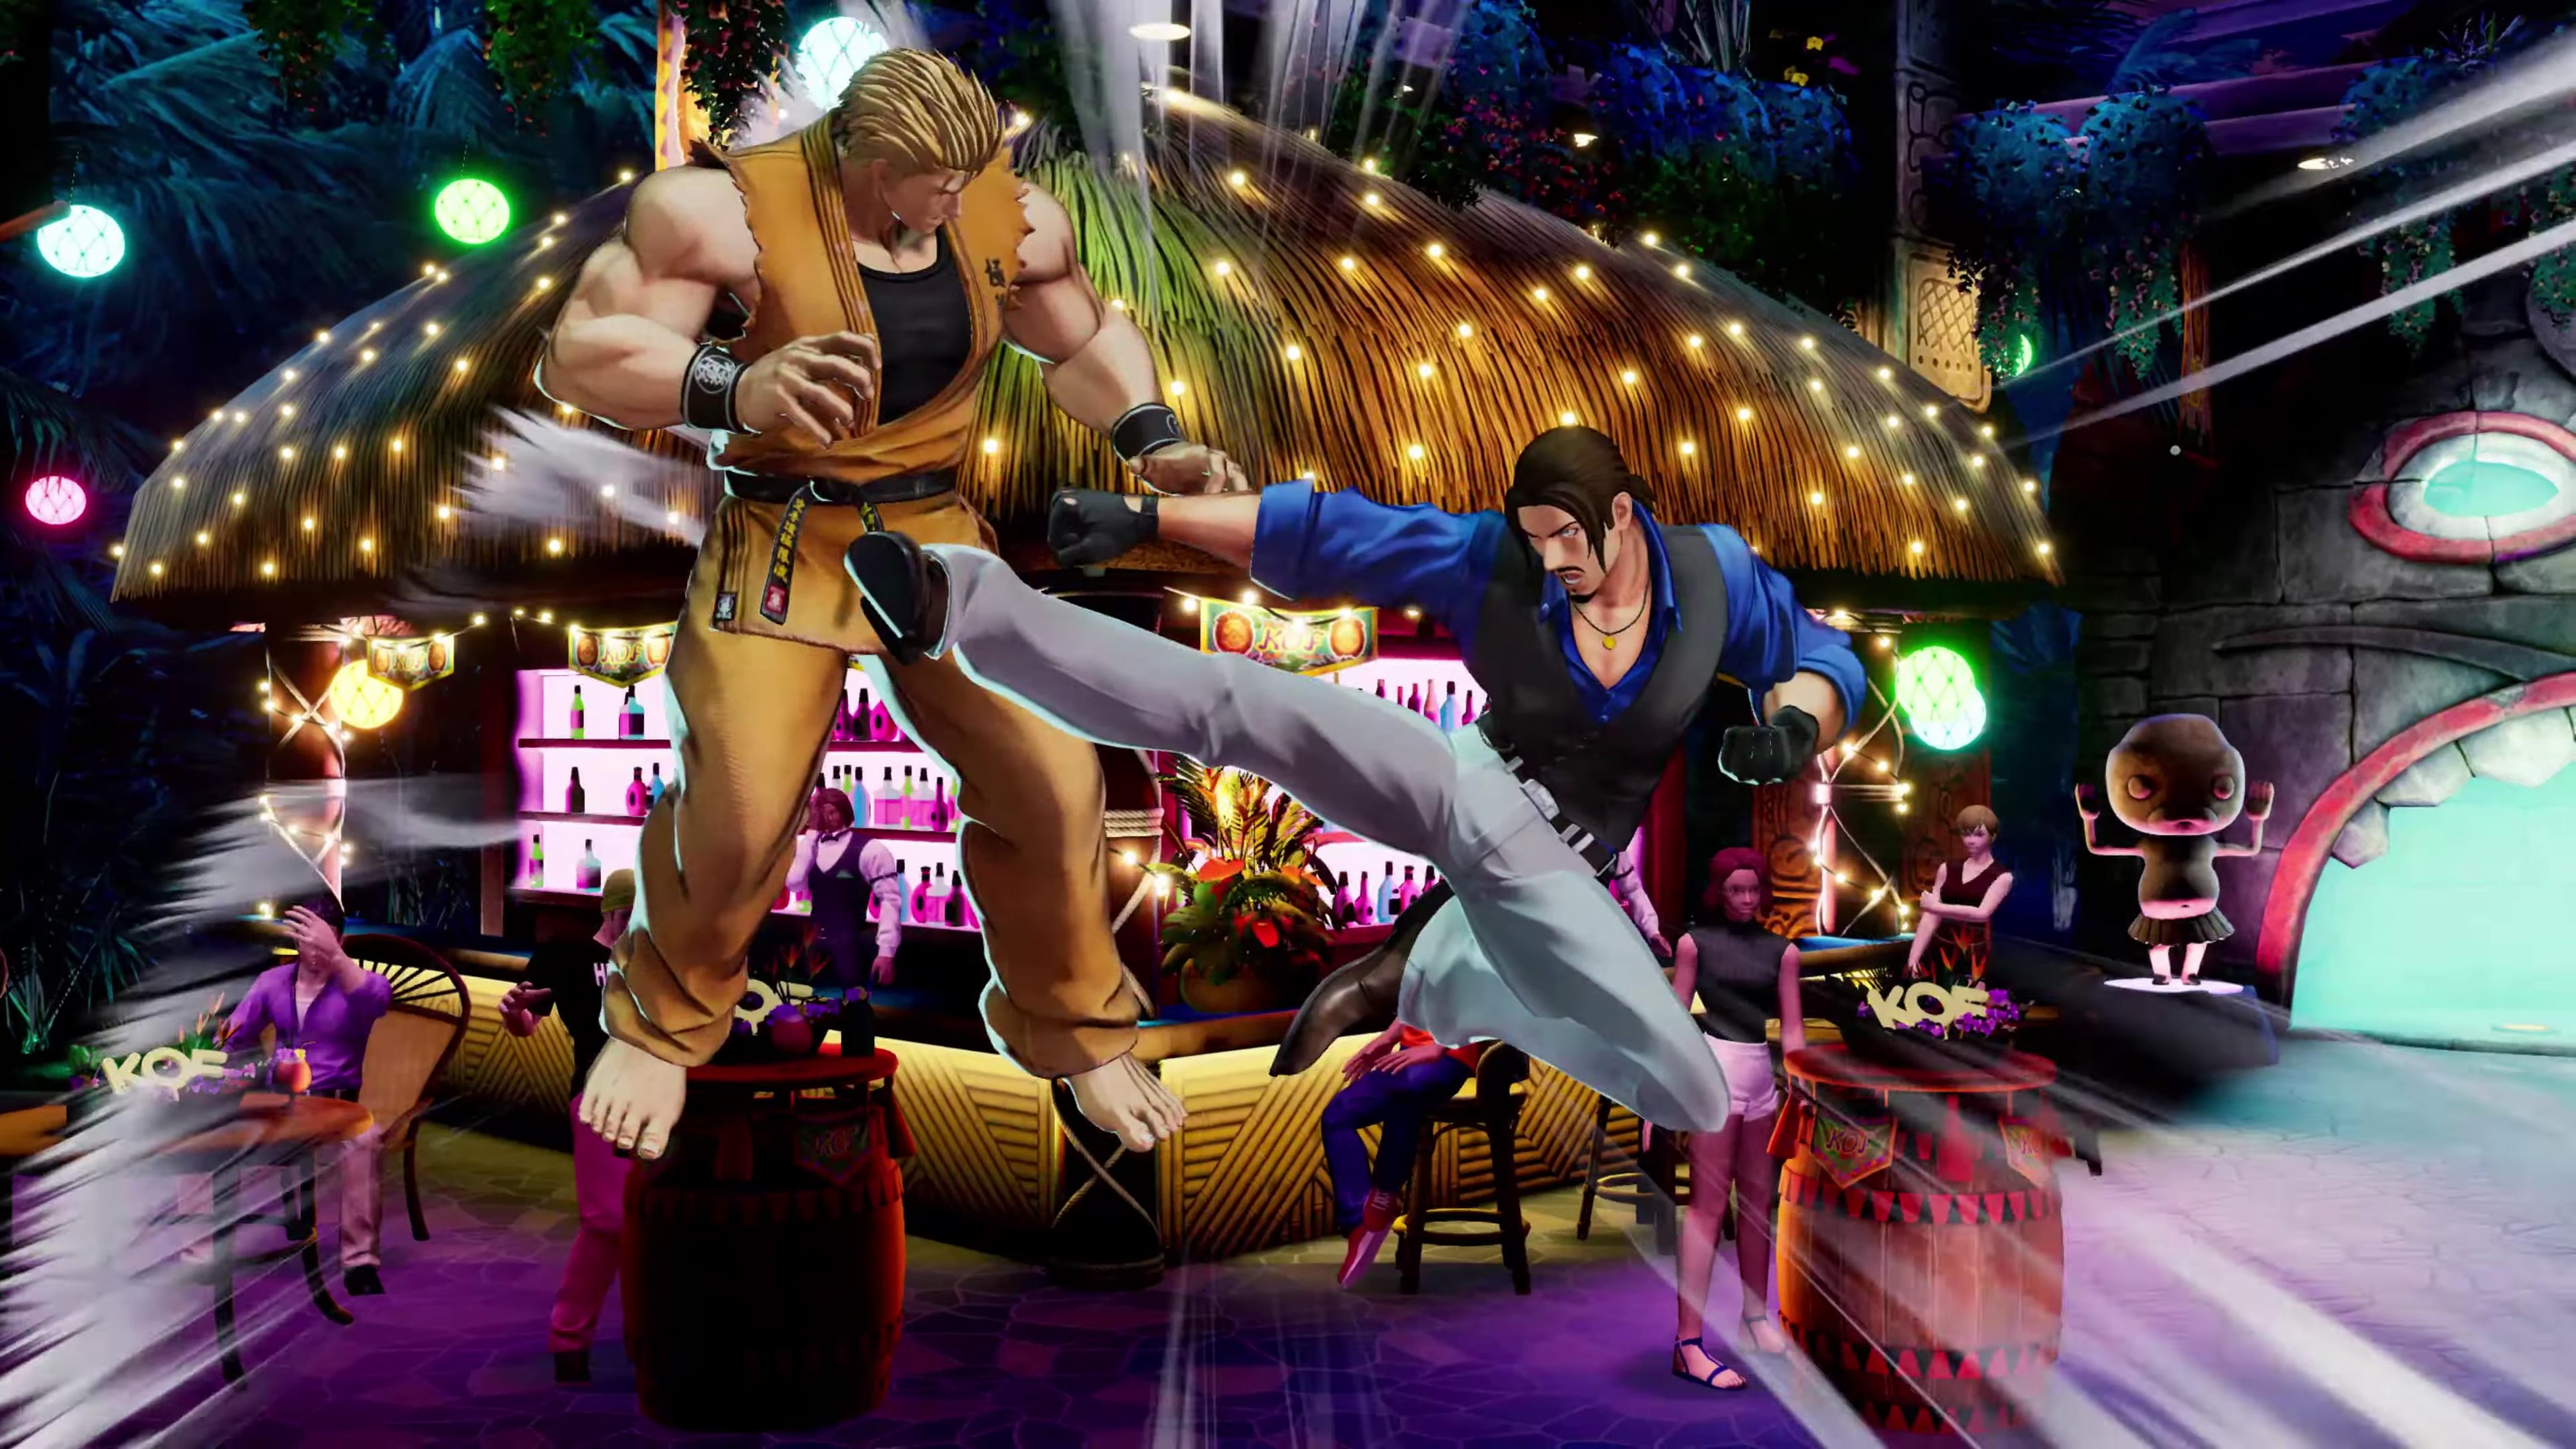 Robert and Ryo KOF15 reveal 5 out of 9 image gallery